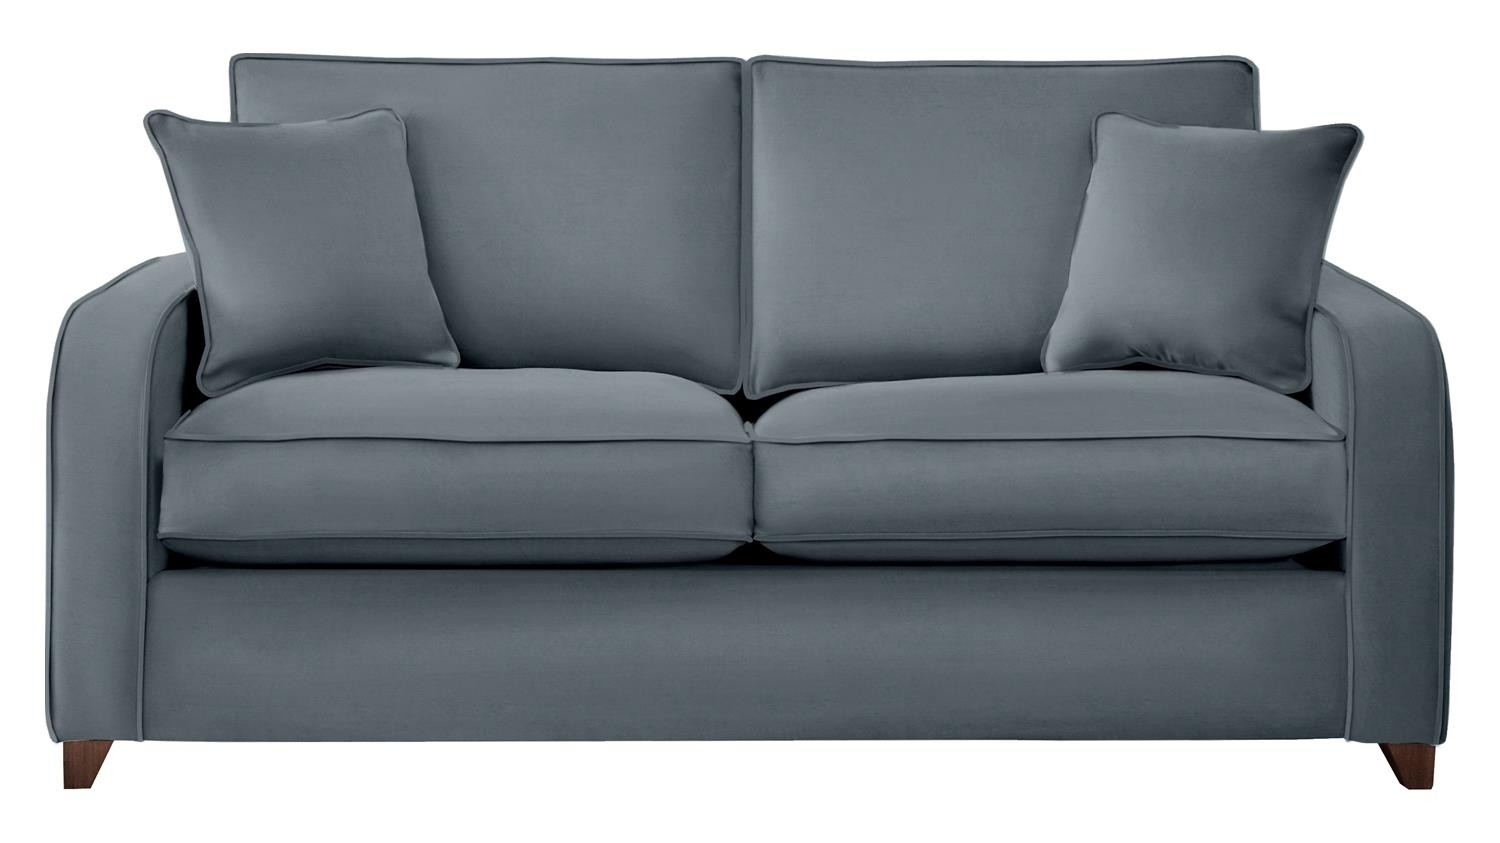 The Dunsmore 3.5 Seater Sofa Bed